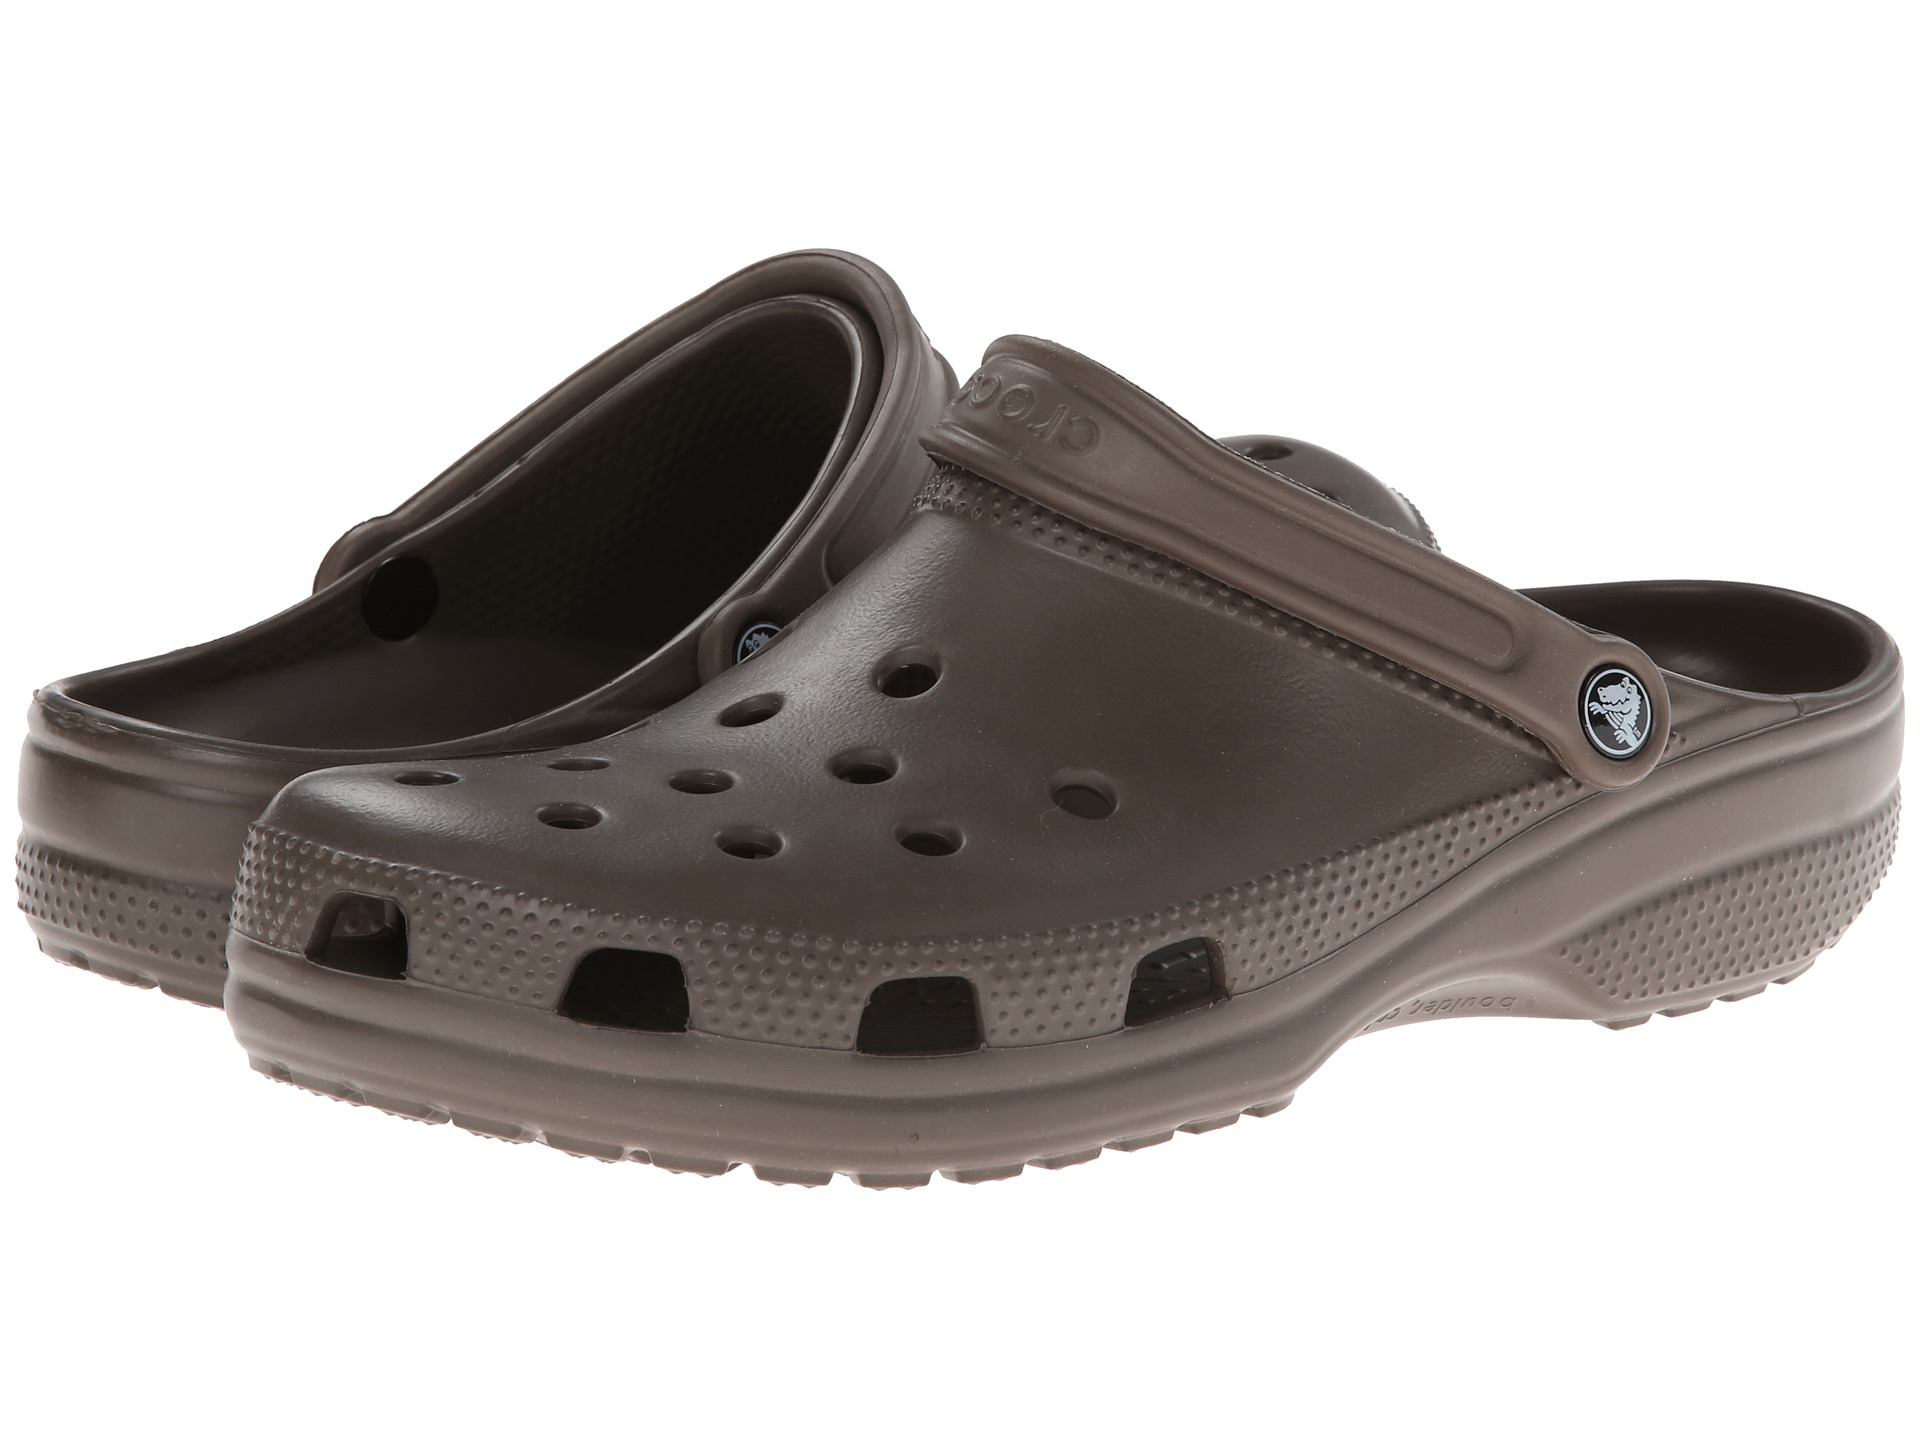 Crocs Classic Clog Chocolate - Zappos.com Free Shipping BOTH Ways